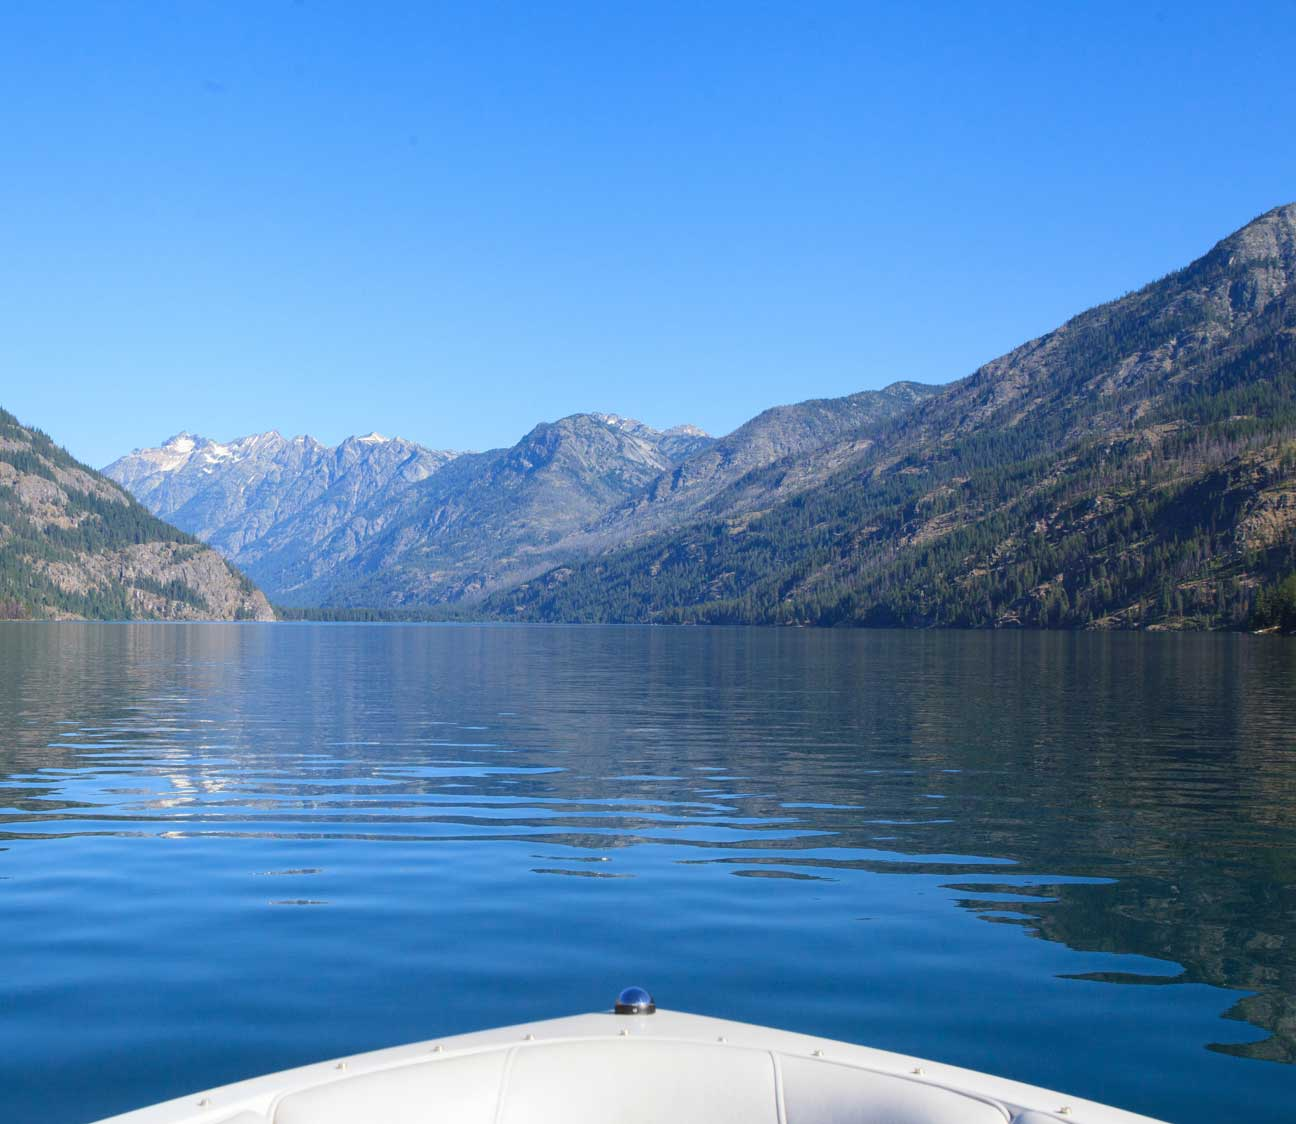 Lake Chelan from a boat